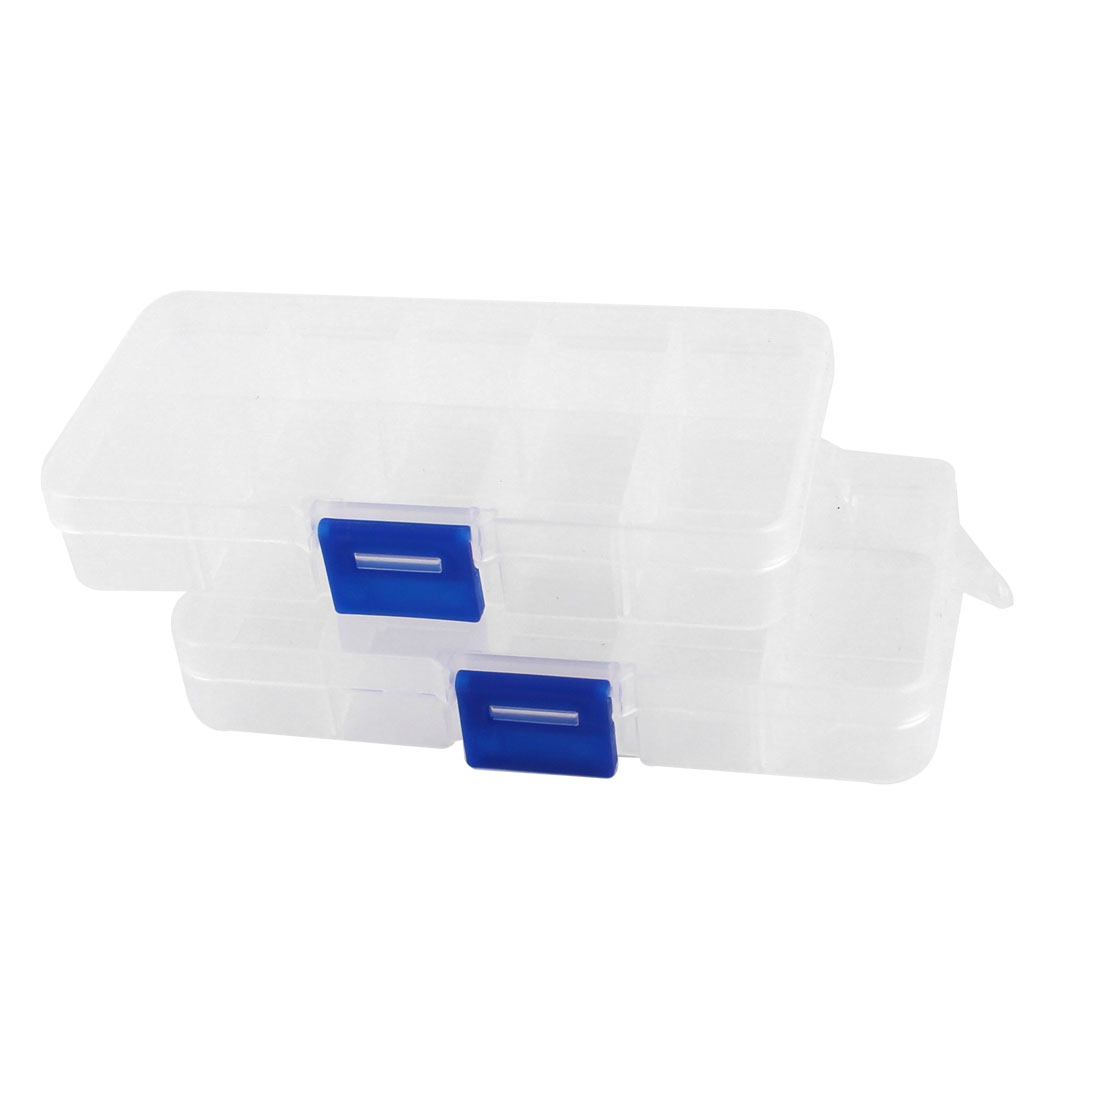 2pcs Plastic 10 Compartments Electronic Components Storage Box Case Container